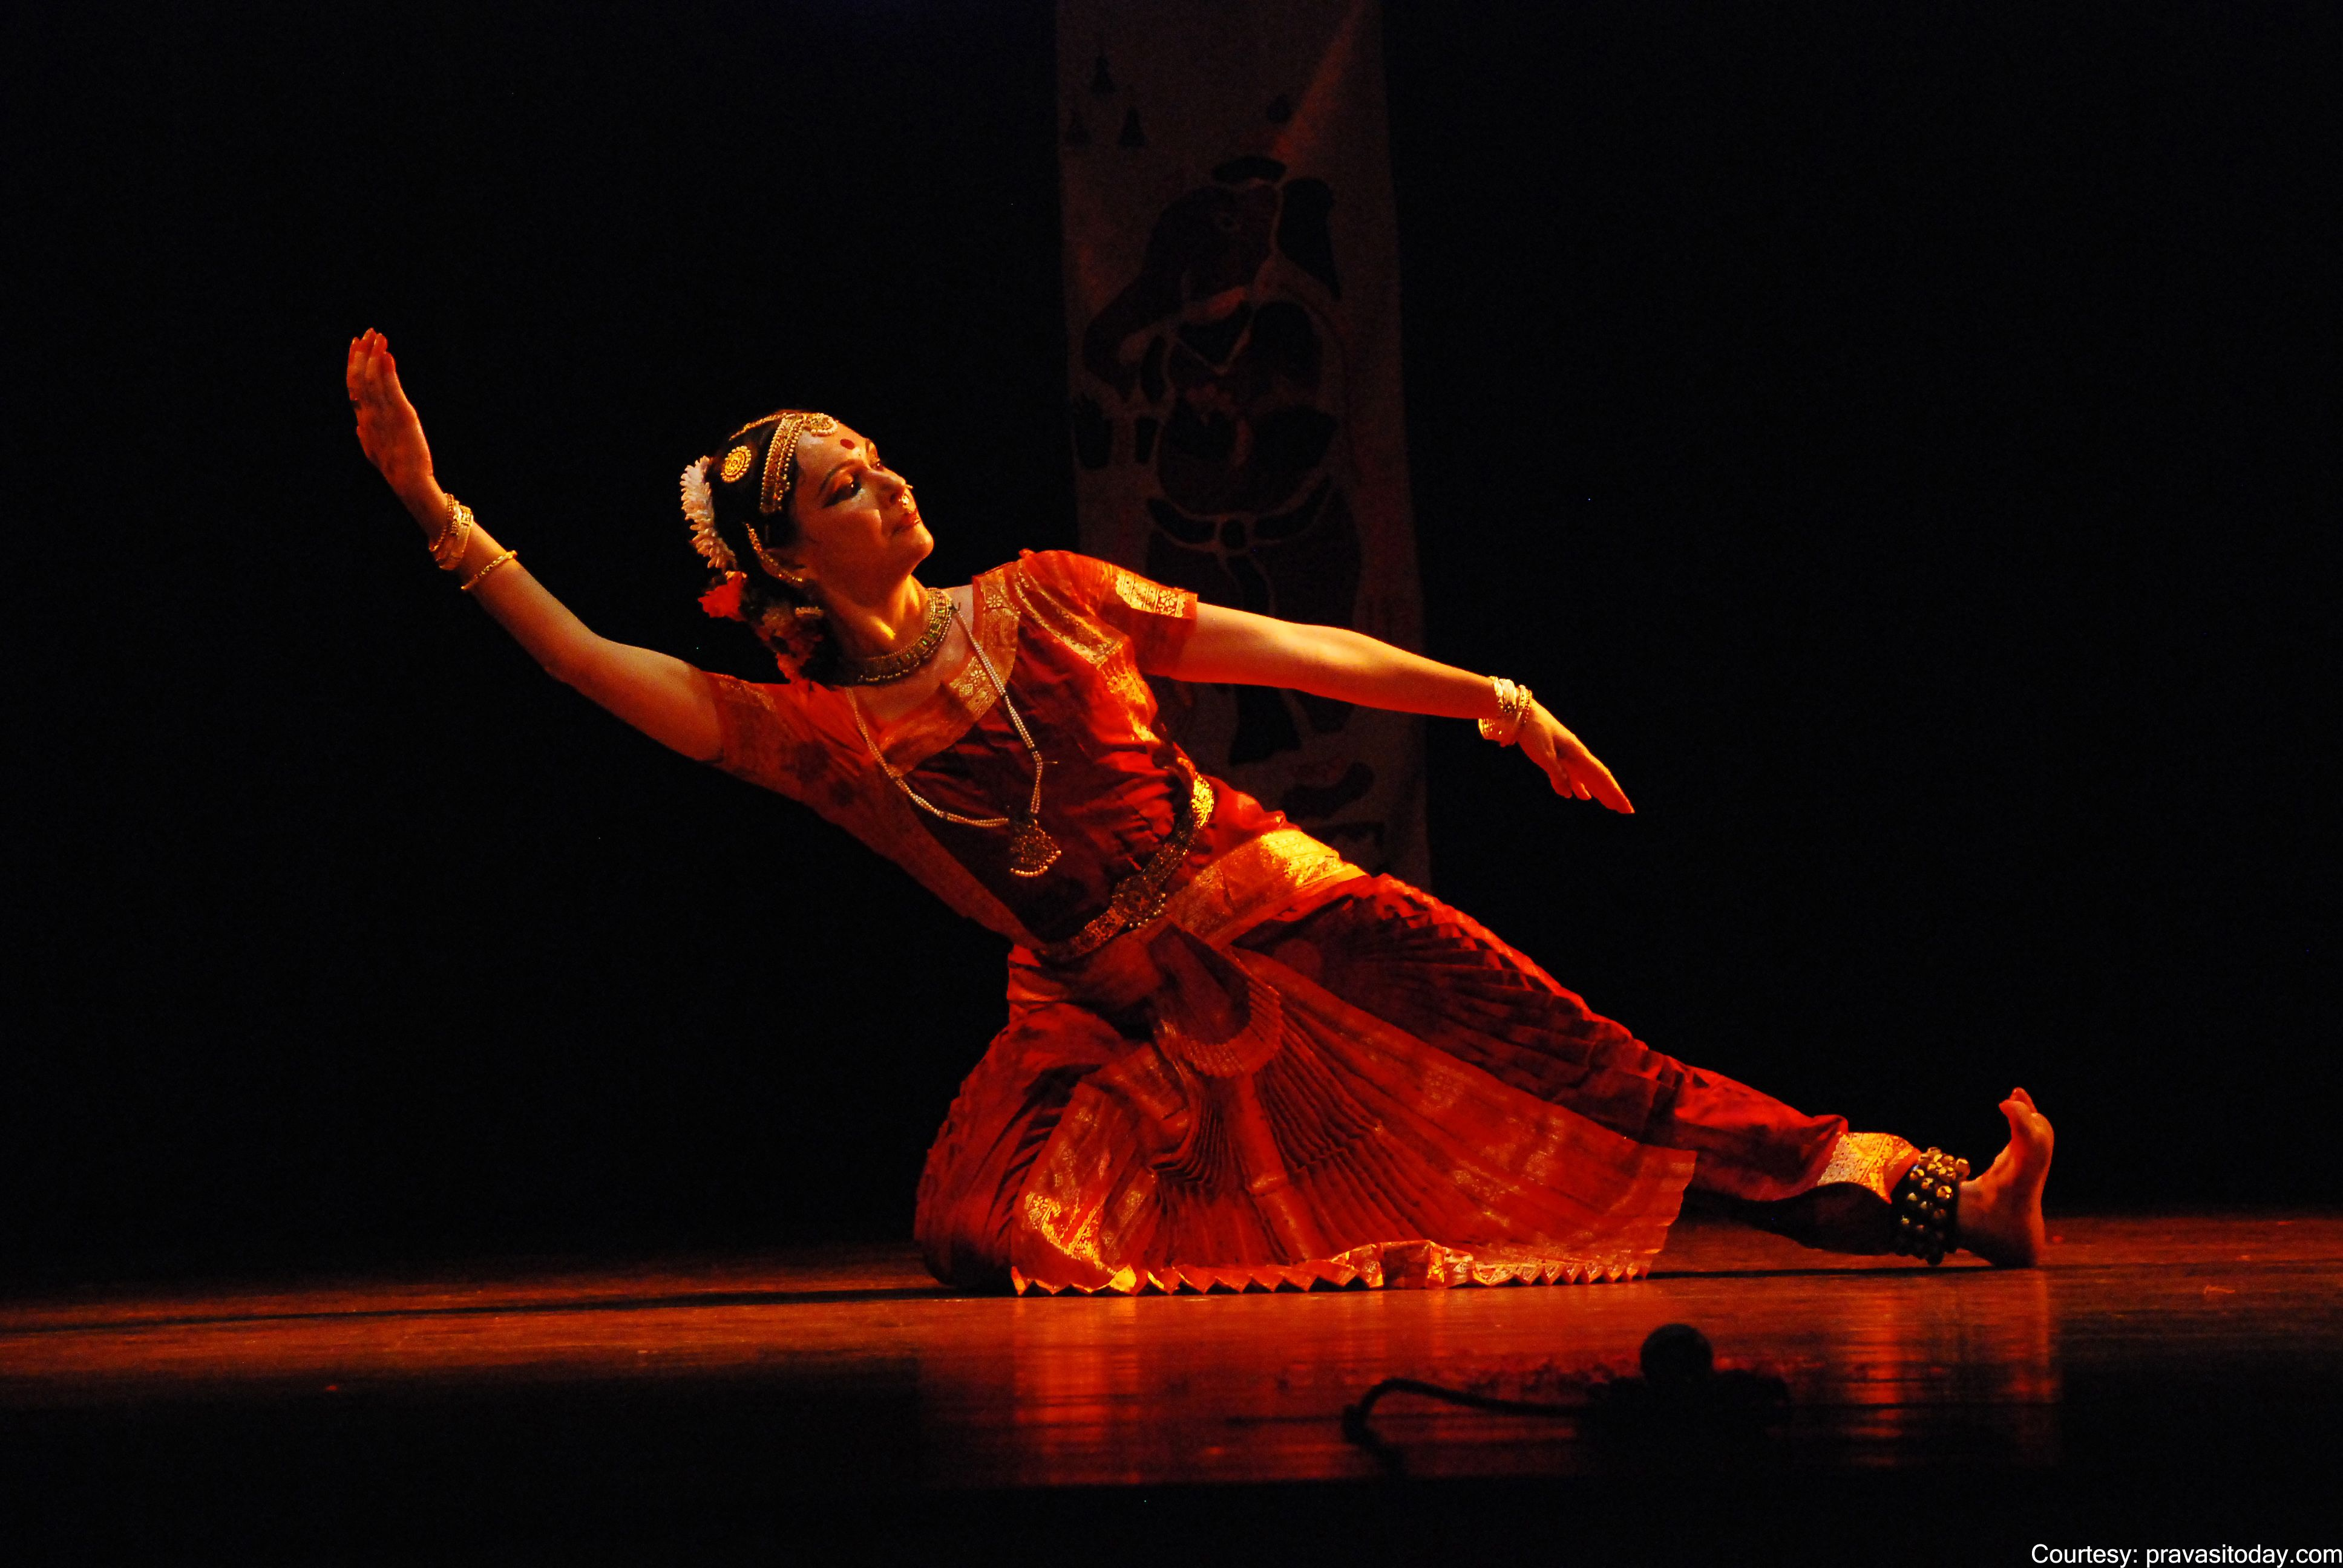 A Popular Classical Indian Dance Form, Bharata Natyam